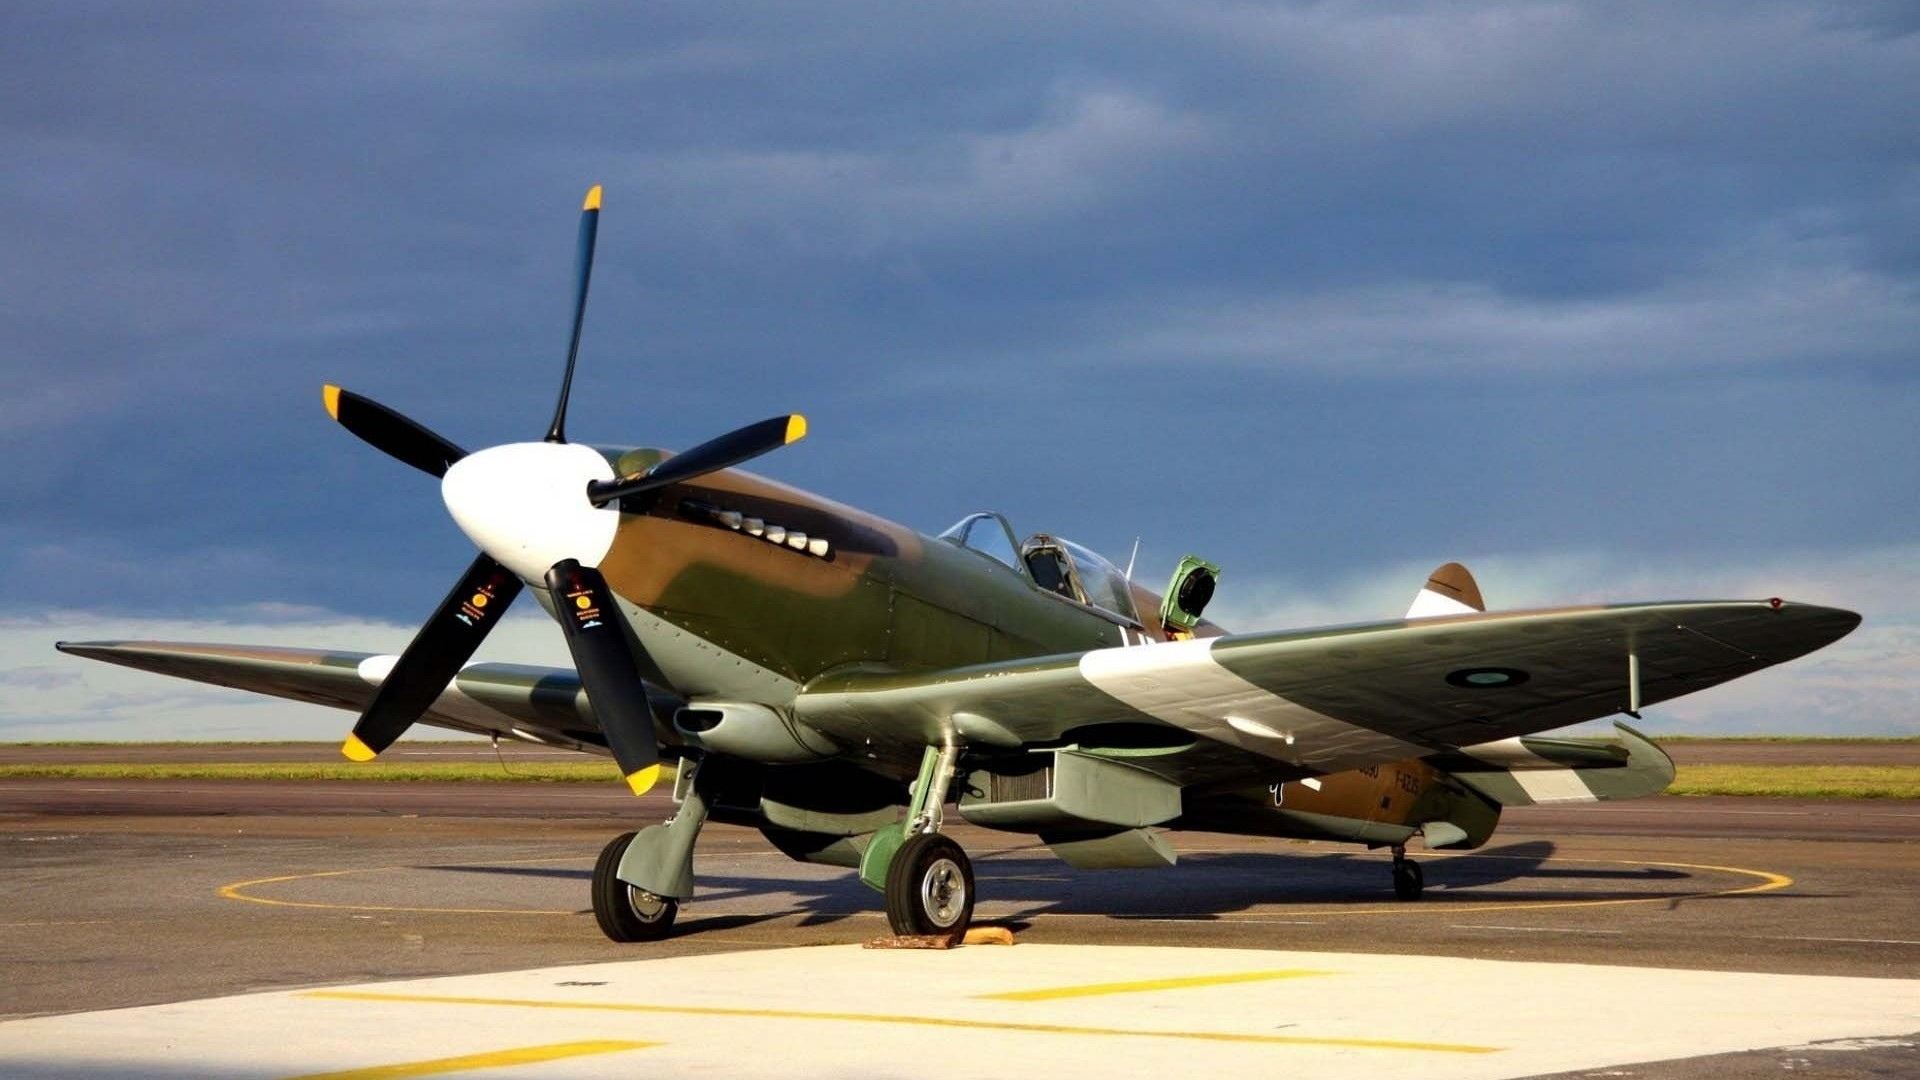 … Fighter Aircraft World War Ii Wallpapers Top · Old Military Aircraft HD  Wallpapers 1080P Imagesize:  HD …